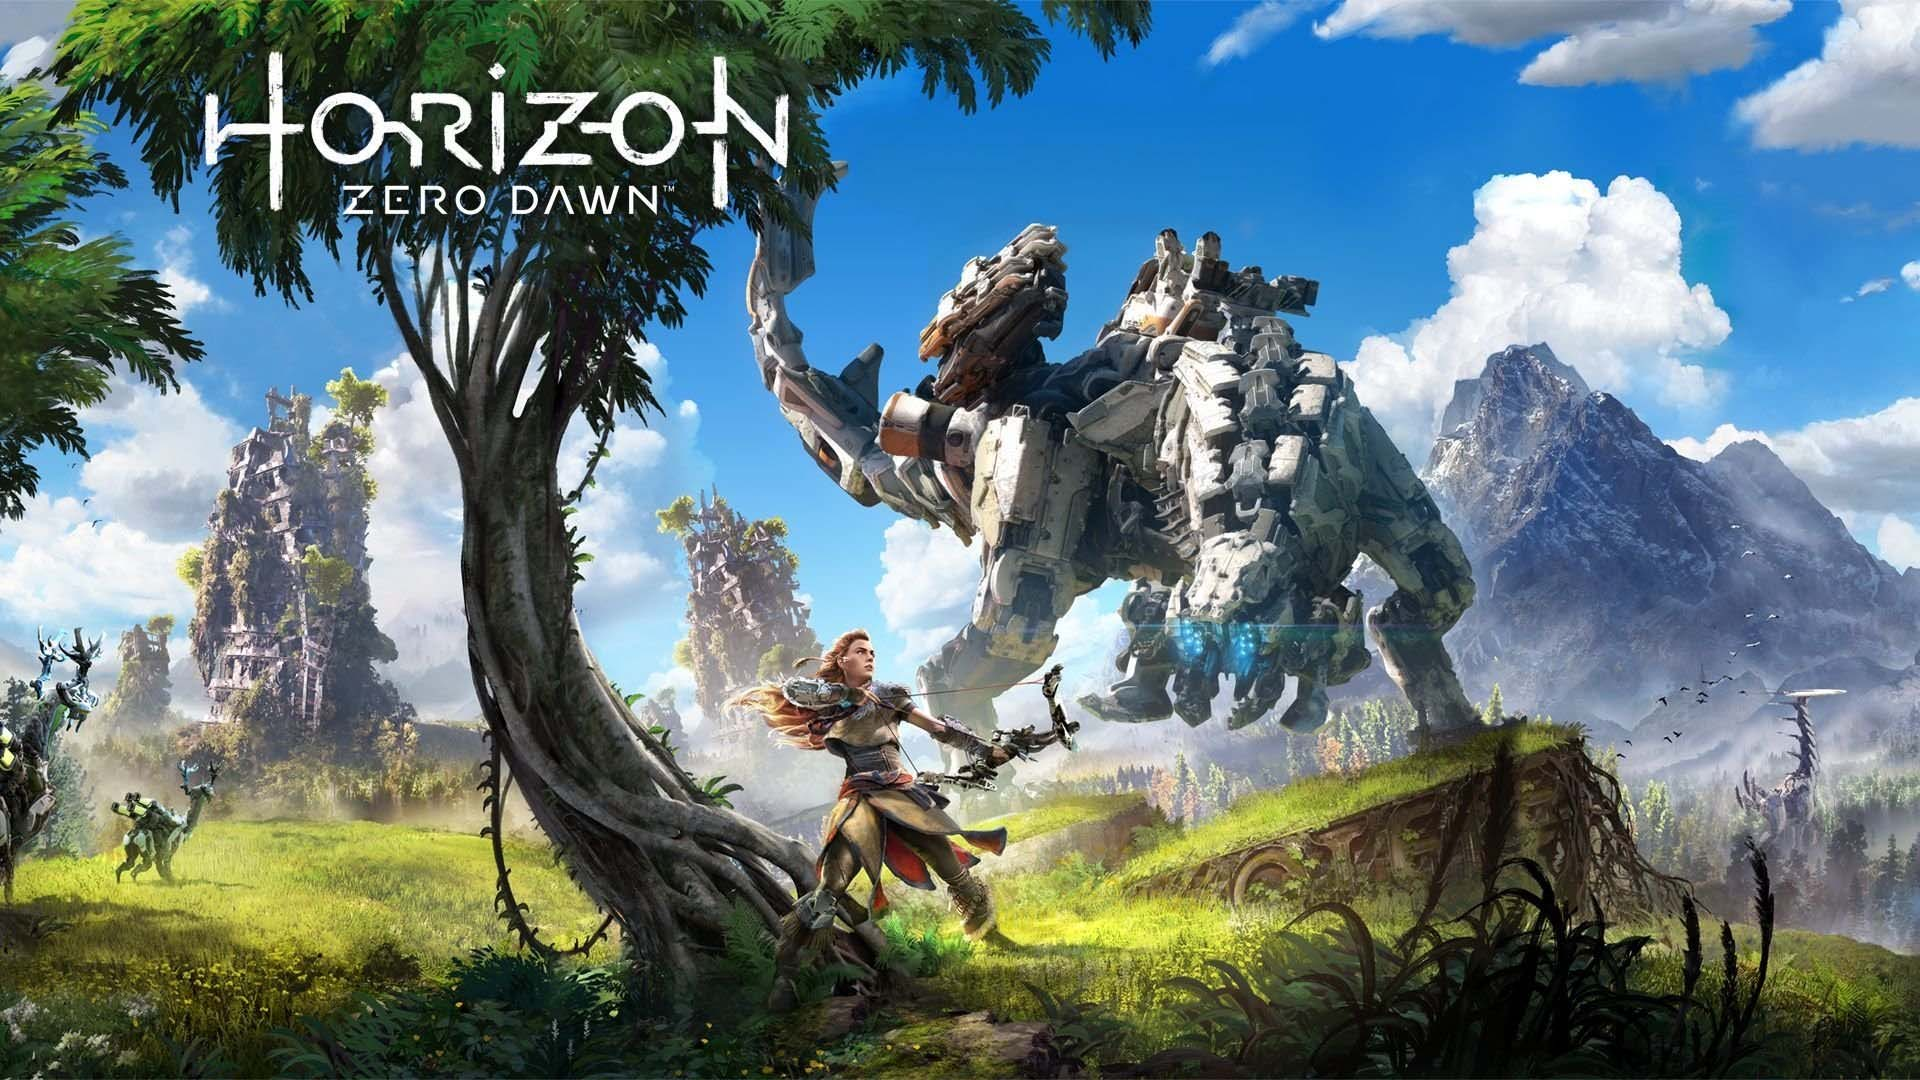 Nouveau Gameplay Complet D'horizon Zero Dawn Sur Pc